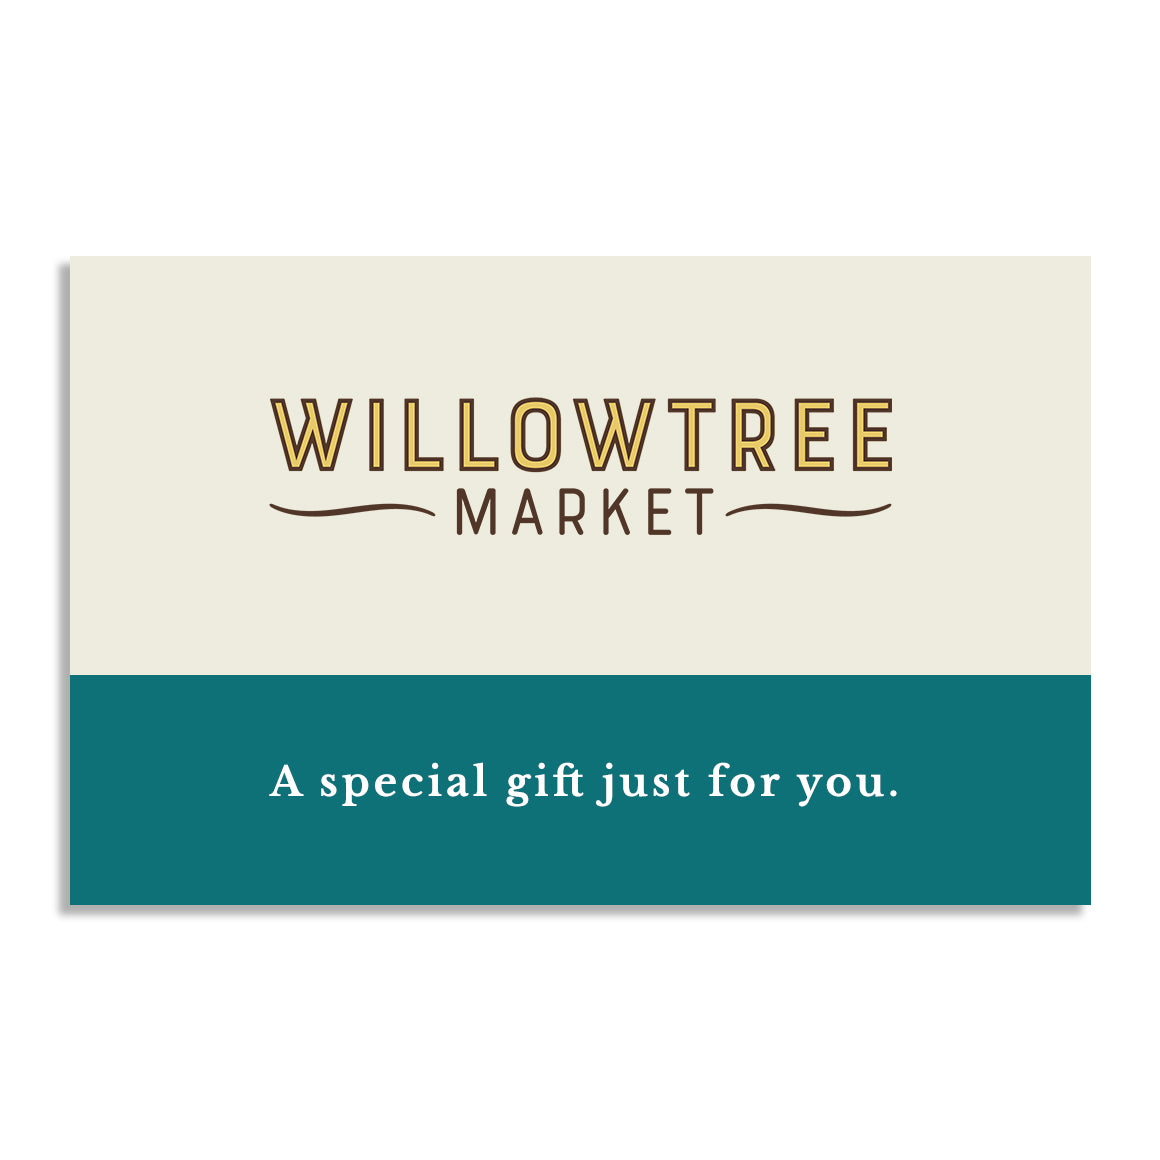 Willowtree Market gift card